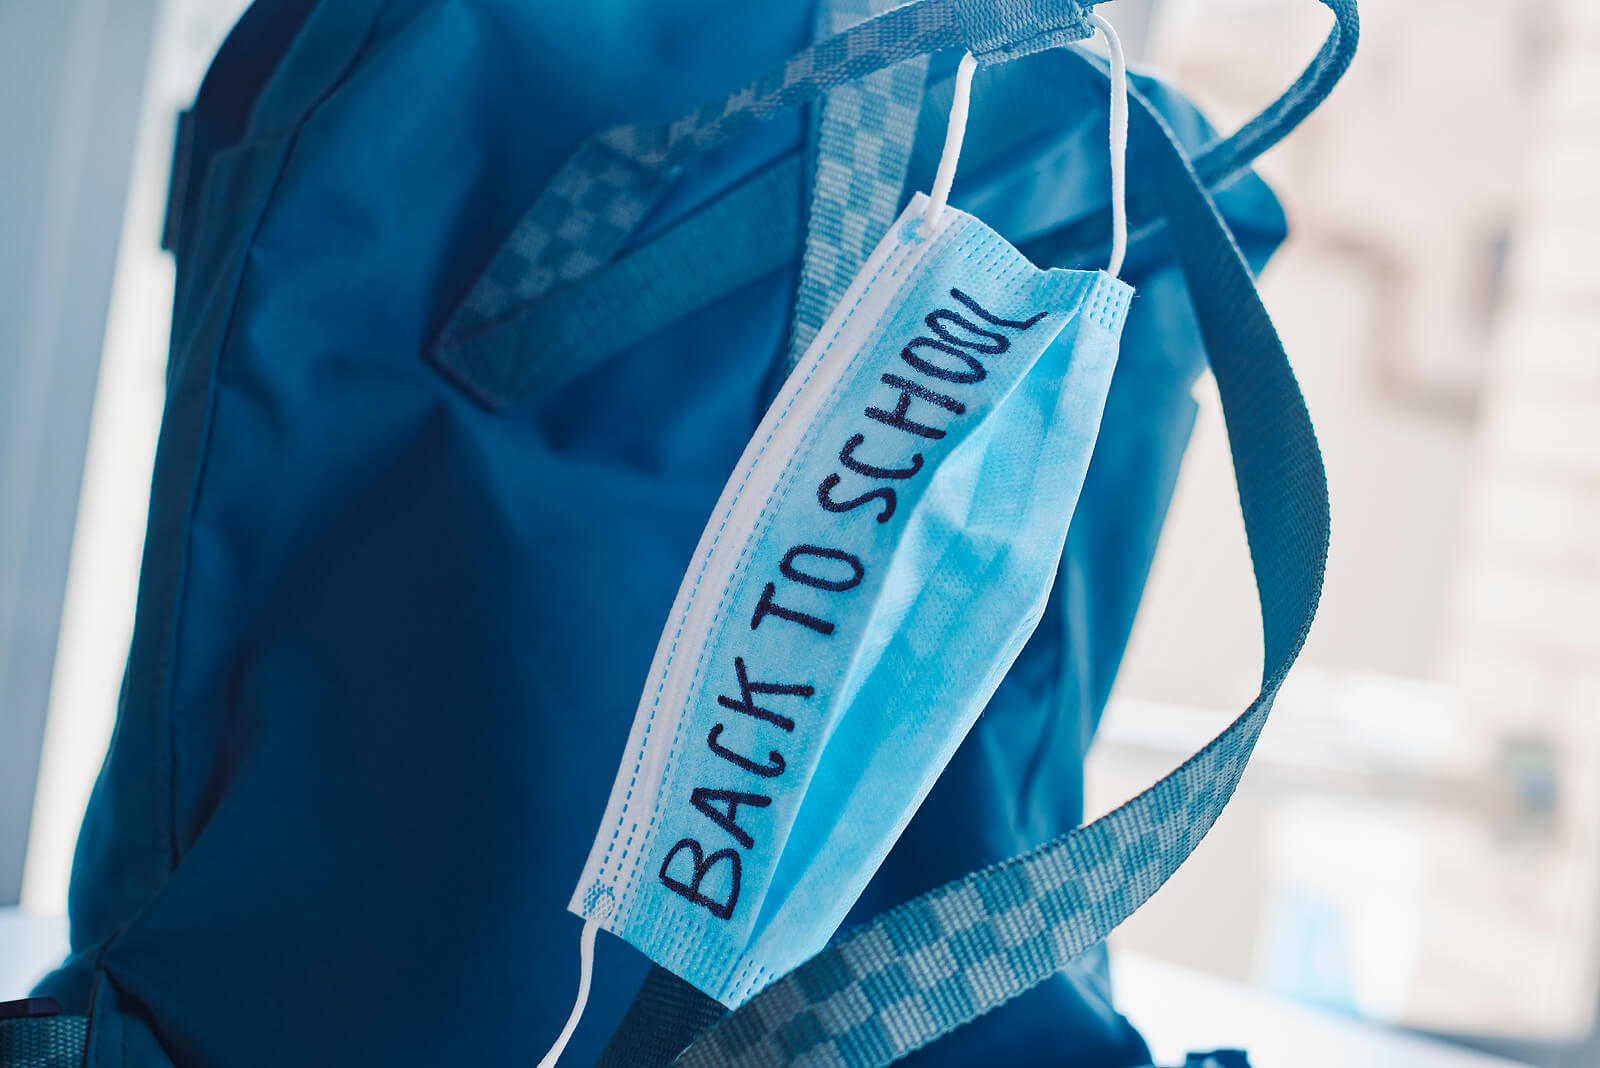 closeup of a green bookbag and a blue surgical mask with the text back to school written in it, depicting the need to prevent the infection at school in the covid-19 pandemic situation for virtual learning during COVID. You can get anxiety treatment in Westfield, NJ and Anxiety treatment in Cranford, NJ with Brave Minds in Scotch Plains, NJ